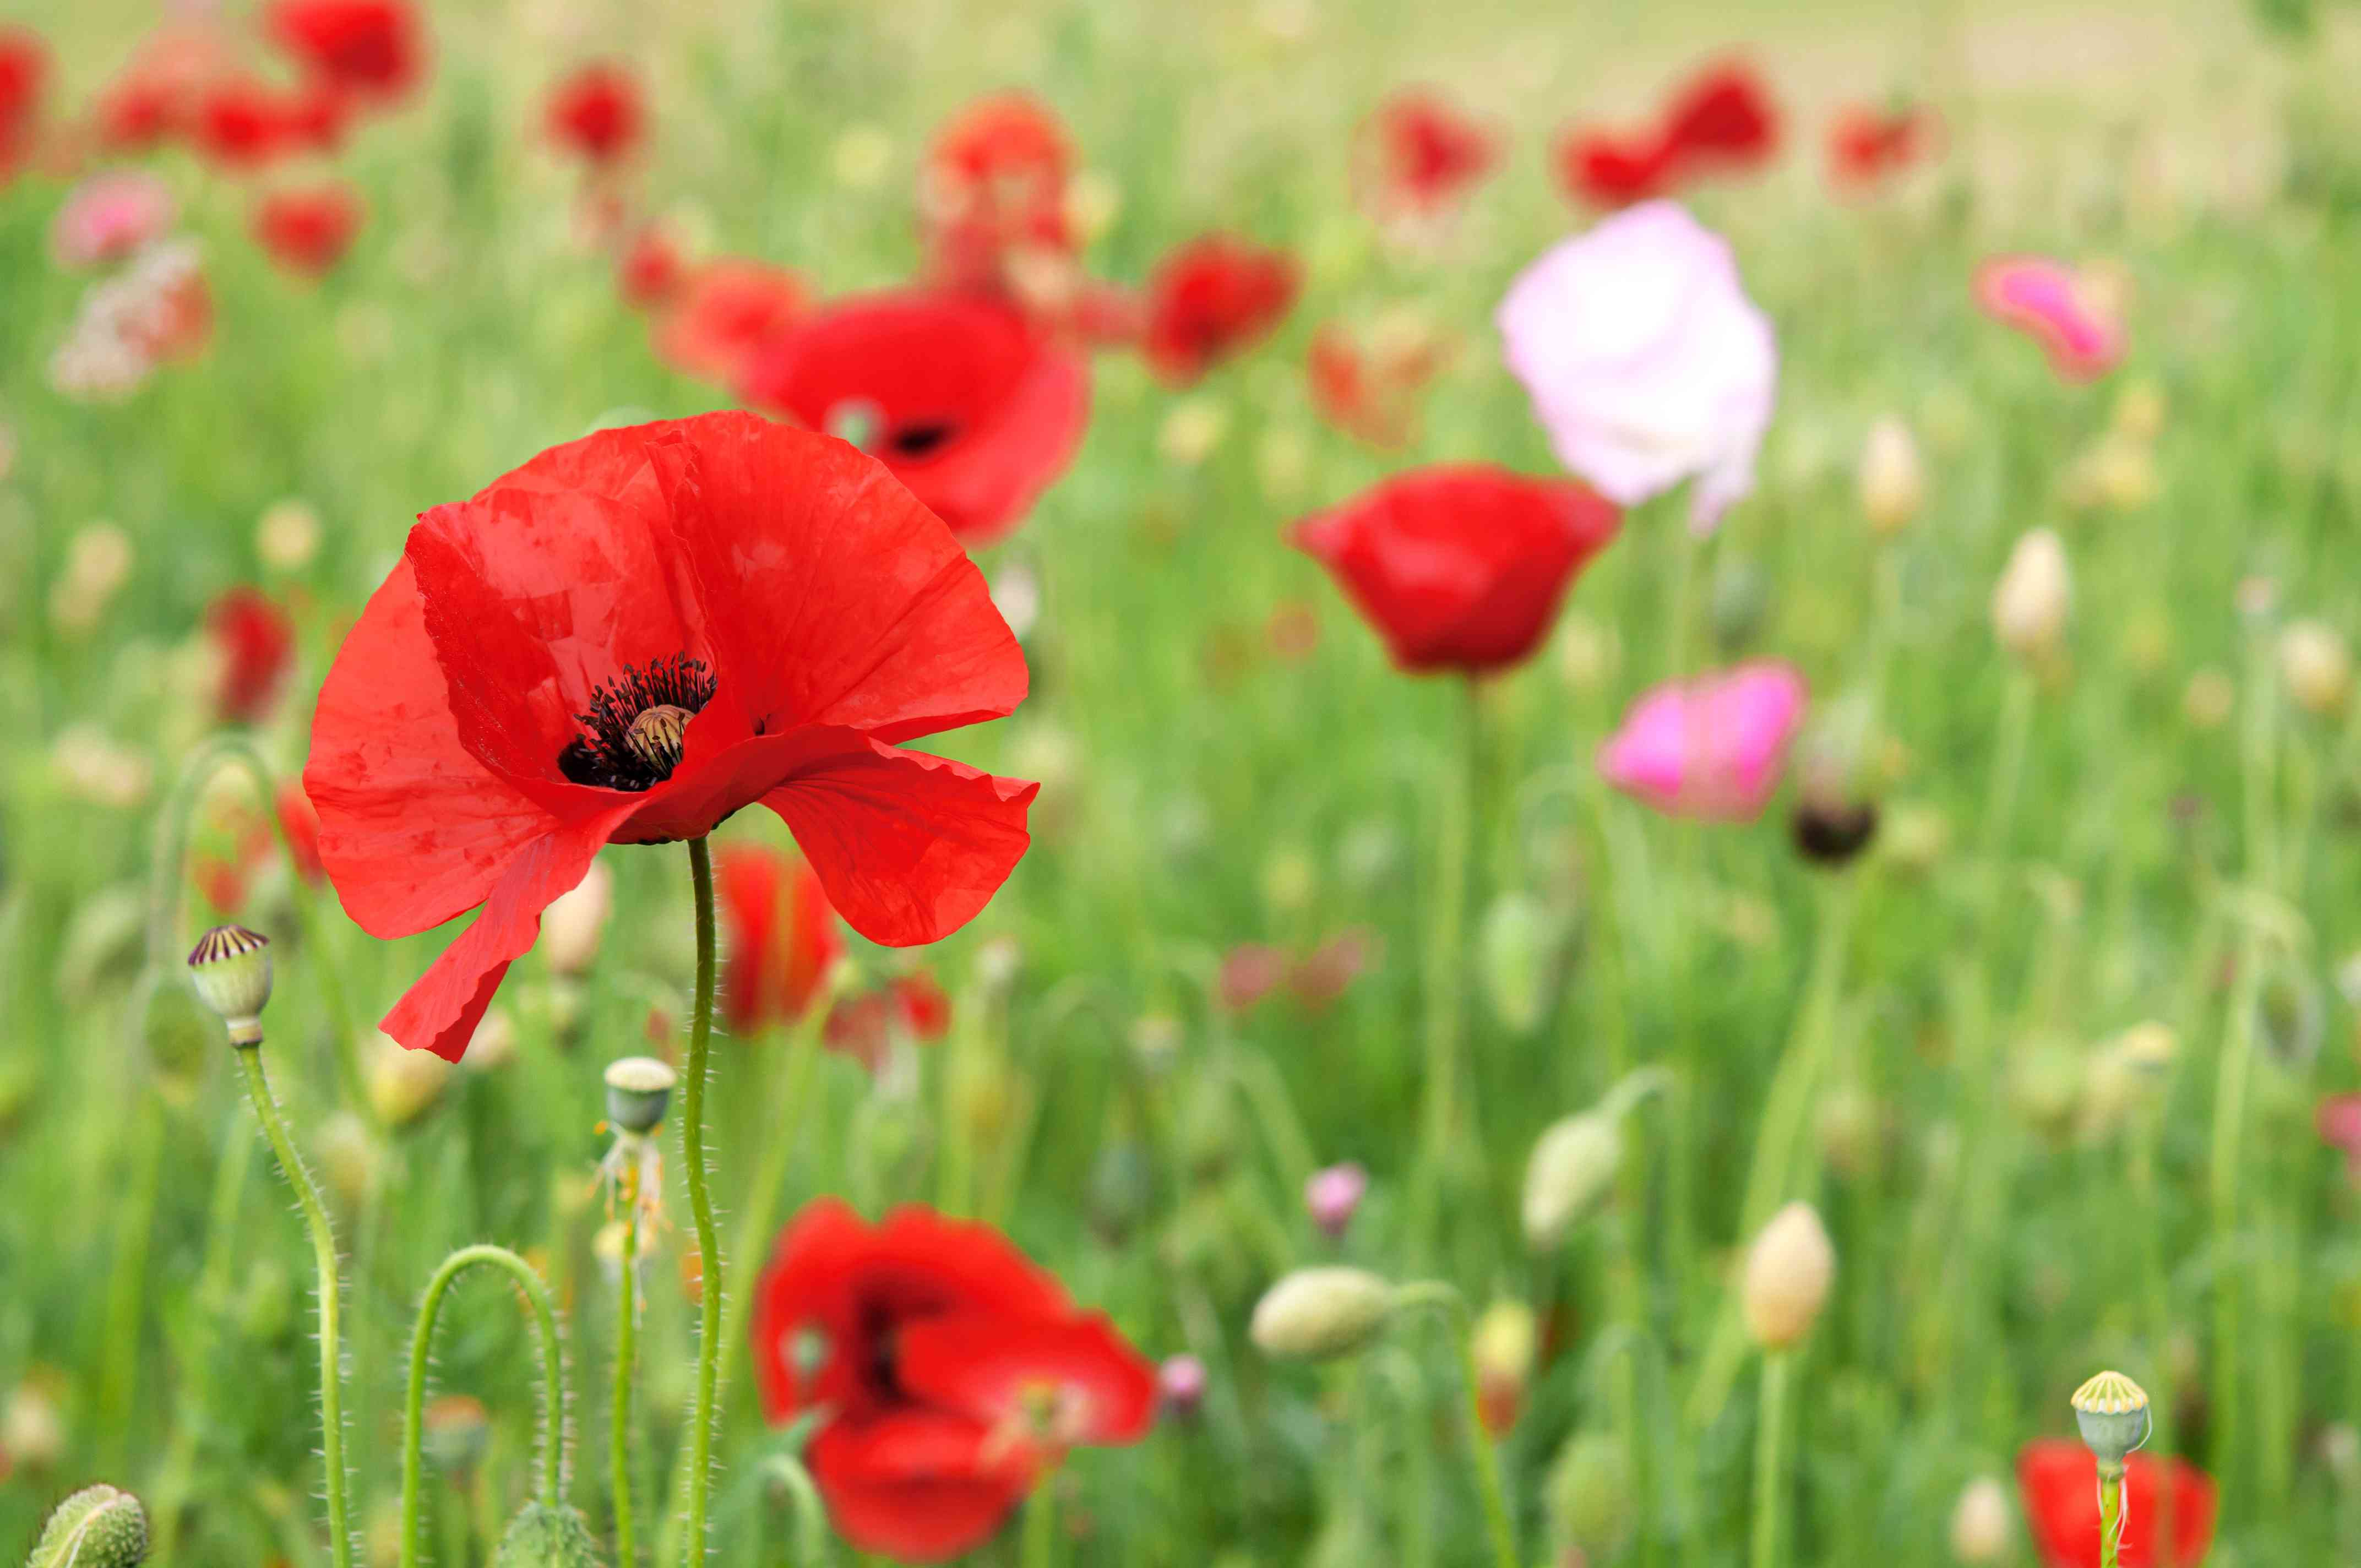 Red poppy on thin stem in front of field with red poppies and wildflowers